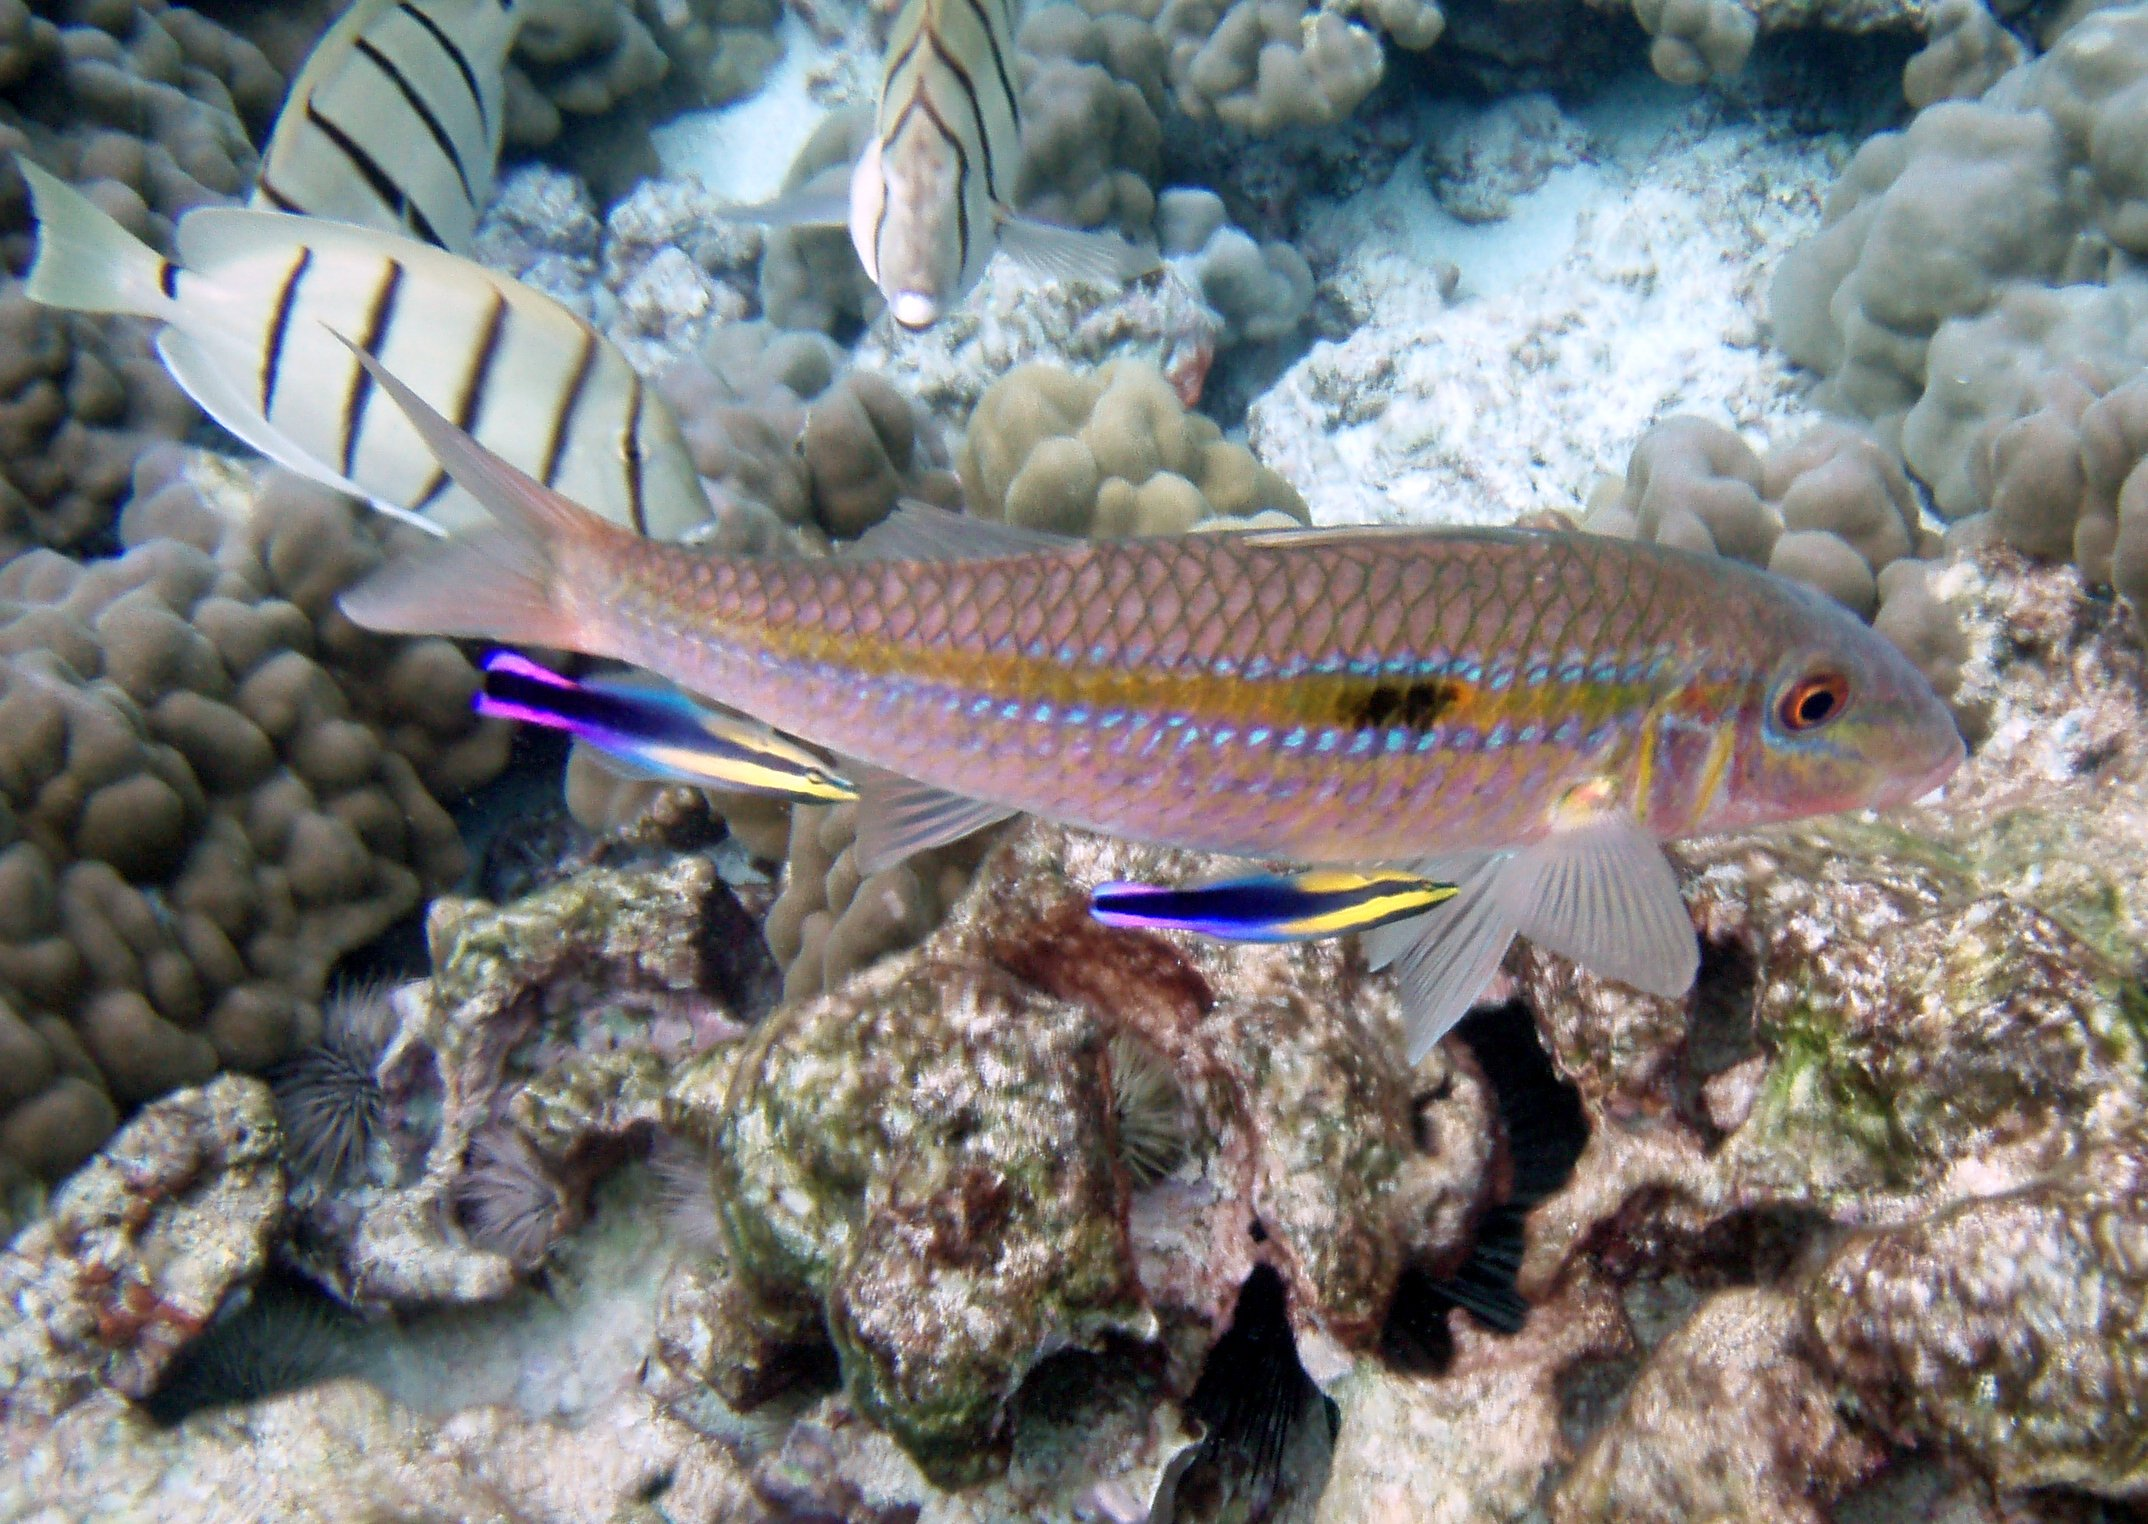 Goatfish, Mulloidichthys flavolineatus at Kona, Hawaii is being cleaned by two cleaner Wrasses, Labroides phthirophagus.